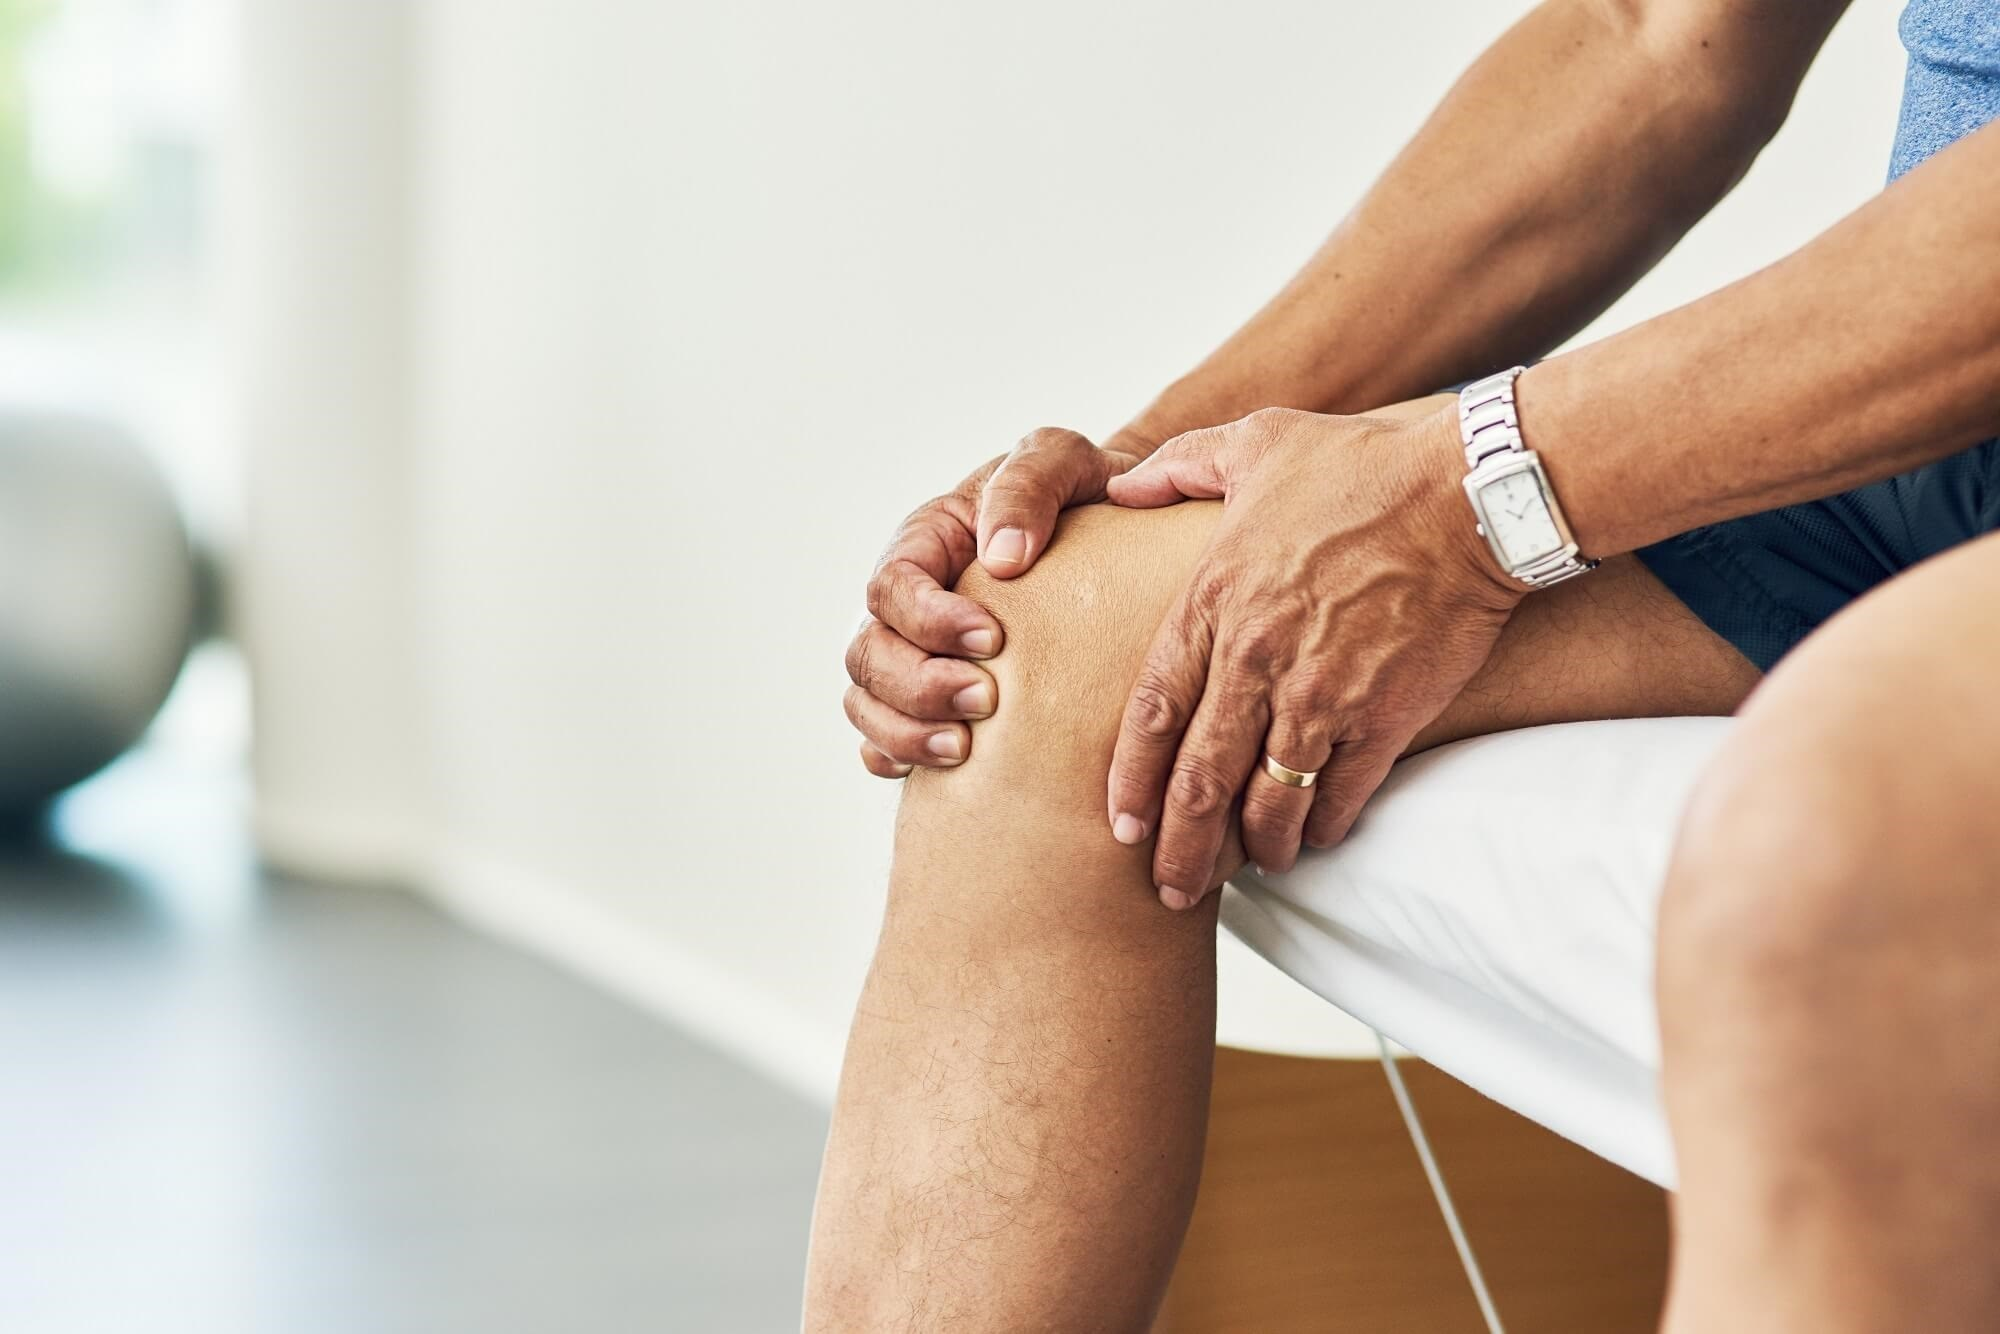 Knee Pain May Be Predictive of Structural Progression in Patients With OA